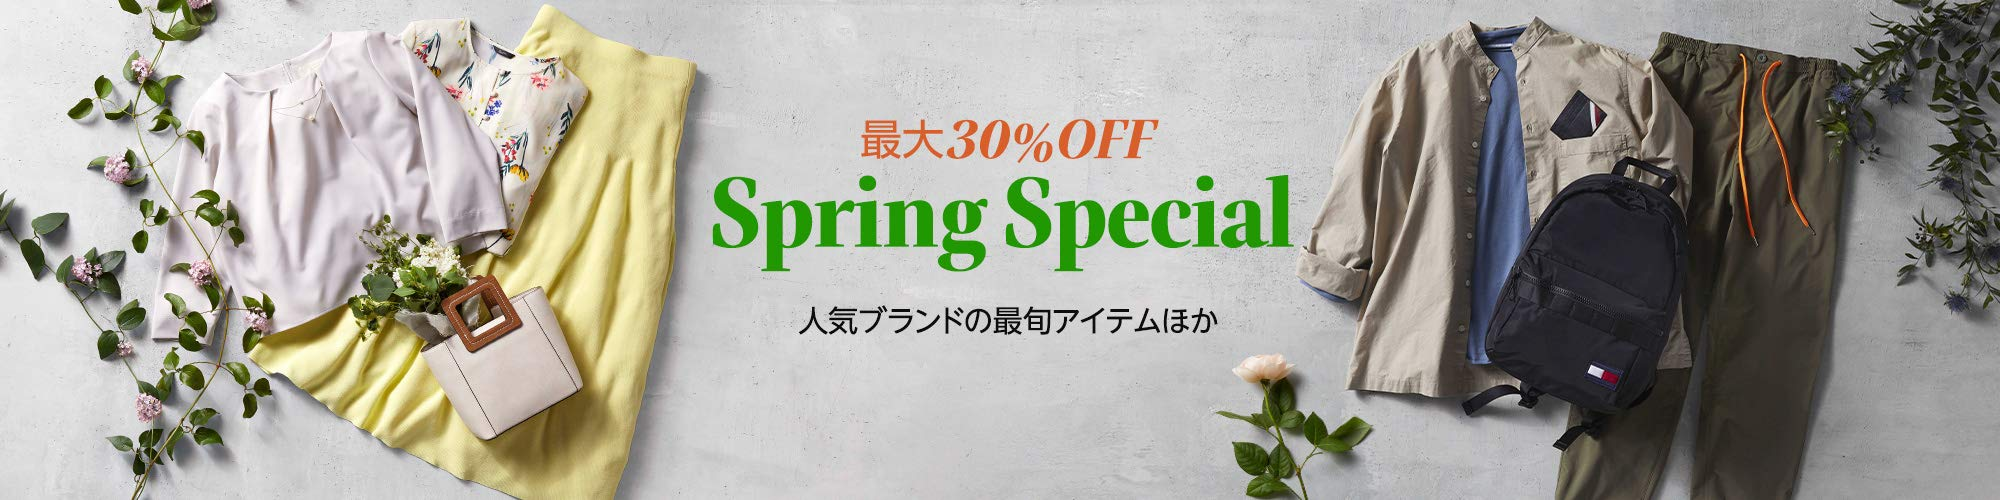 Spring Special 最大30%OFF